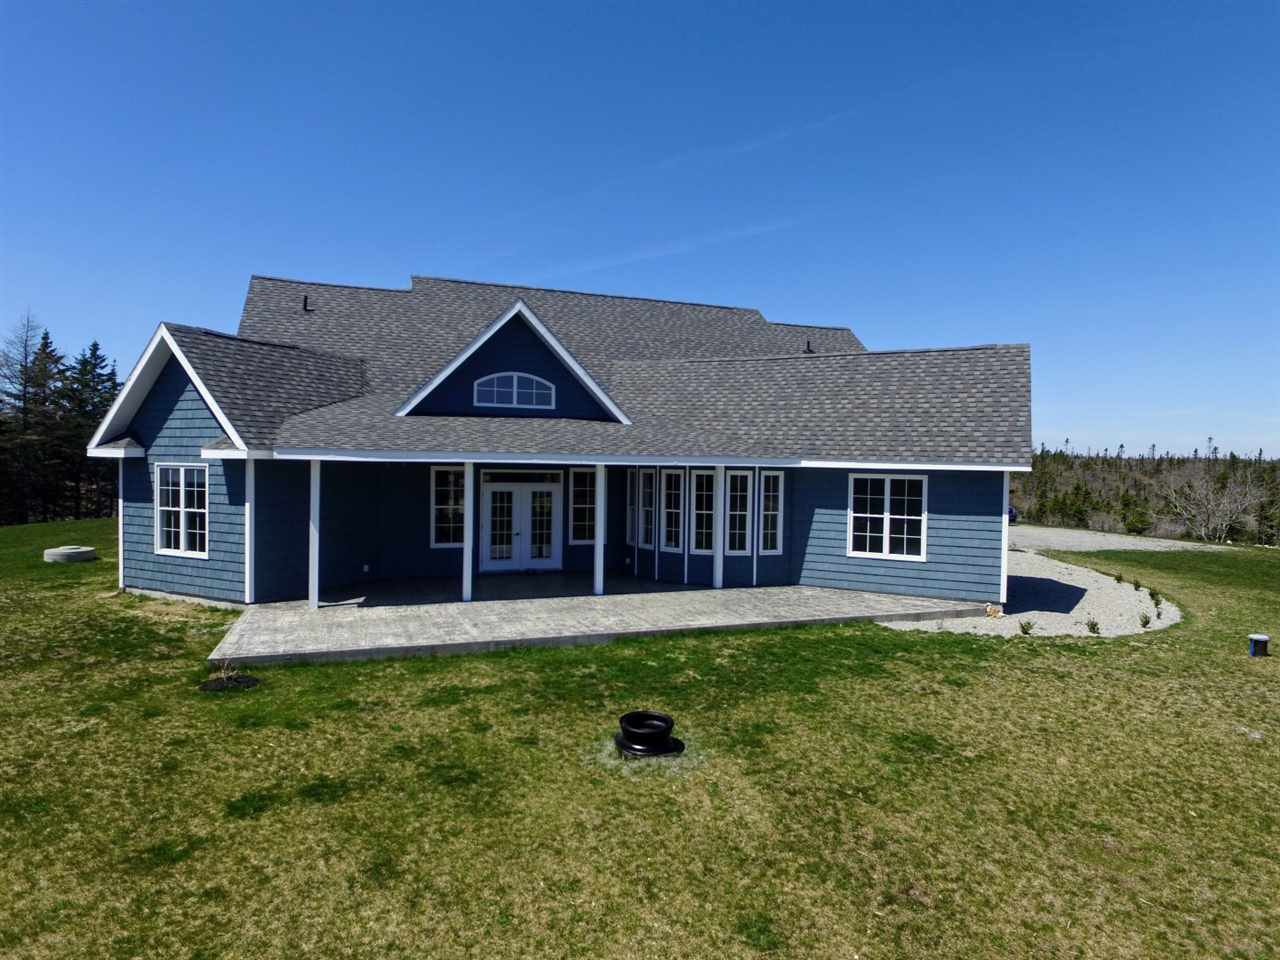 Photo 3: Photos: 1902 Stoney Island Road in Centreville: 407-Shelburne County Residential for sale (South Shore)  : MLS®# 201926888